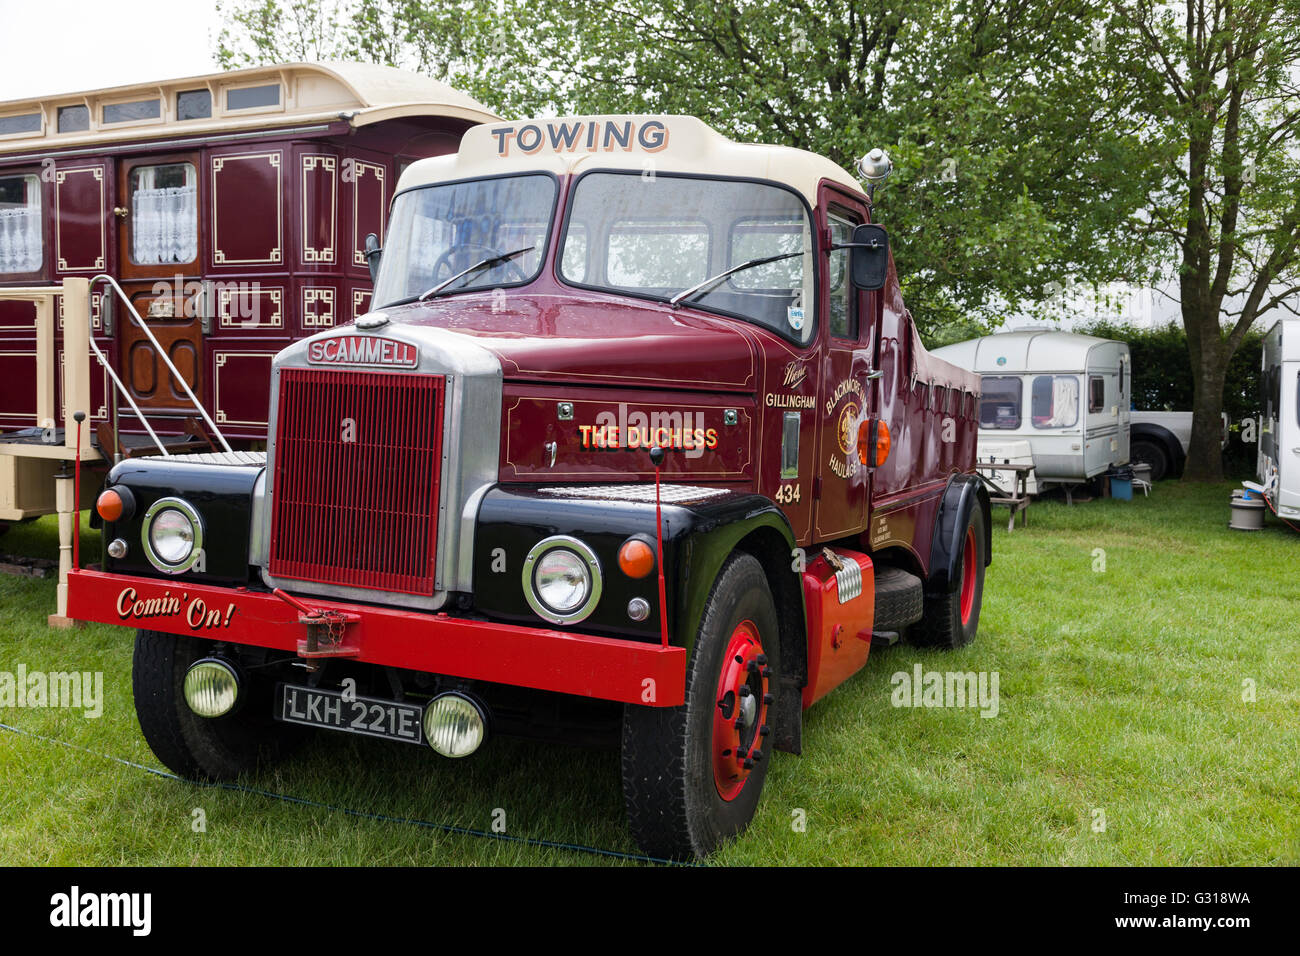 The Duchess Scammell - LKH 221E. - Stock Image